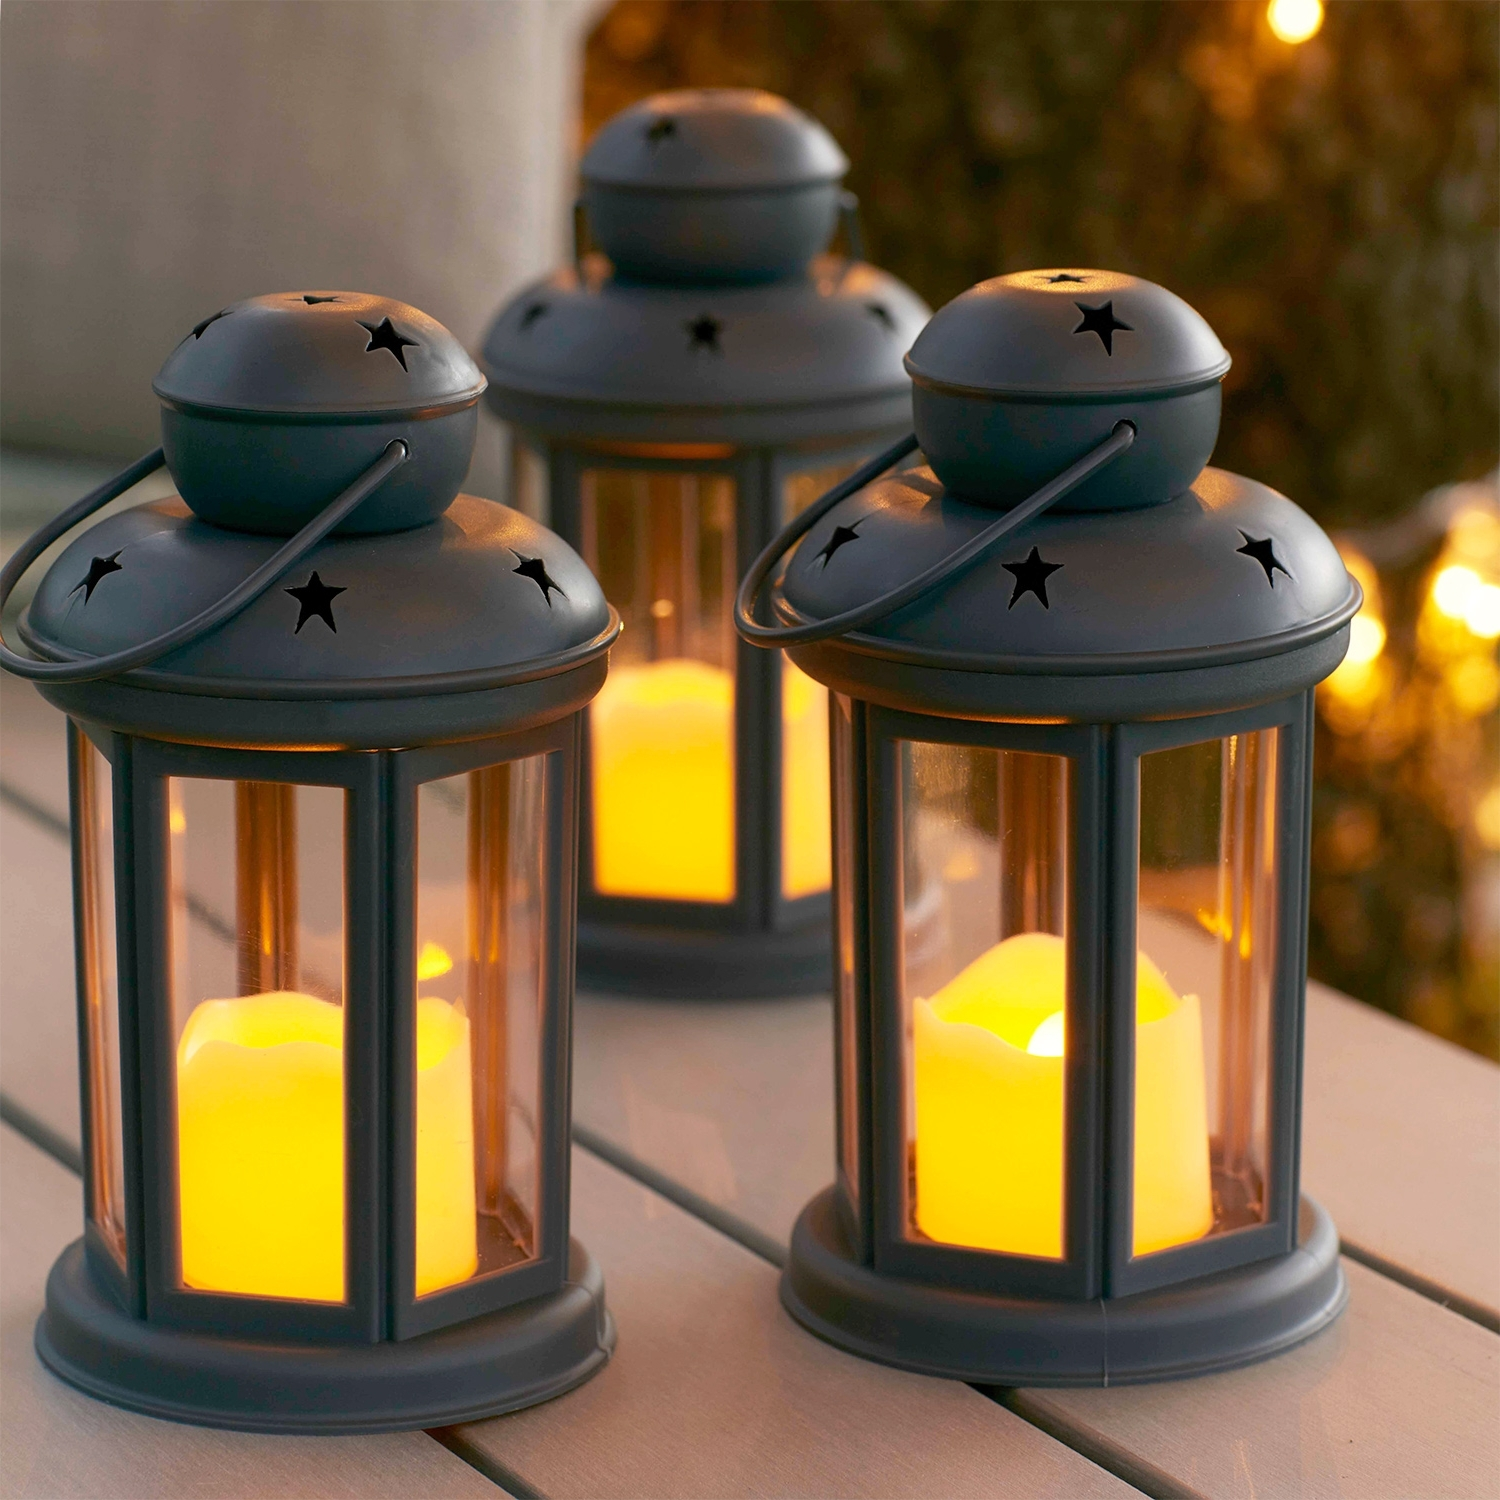 Outdoor Lanterns With Led Candles Throughout Most Recently Released Set Of 3 Grey Battery Operated Led Indoor Outdoor Flameless Candle (View 15 of 20)